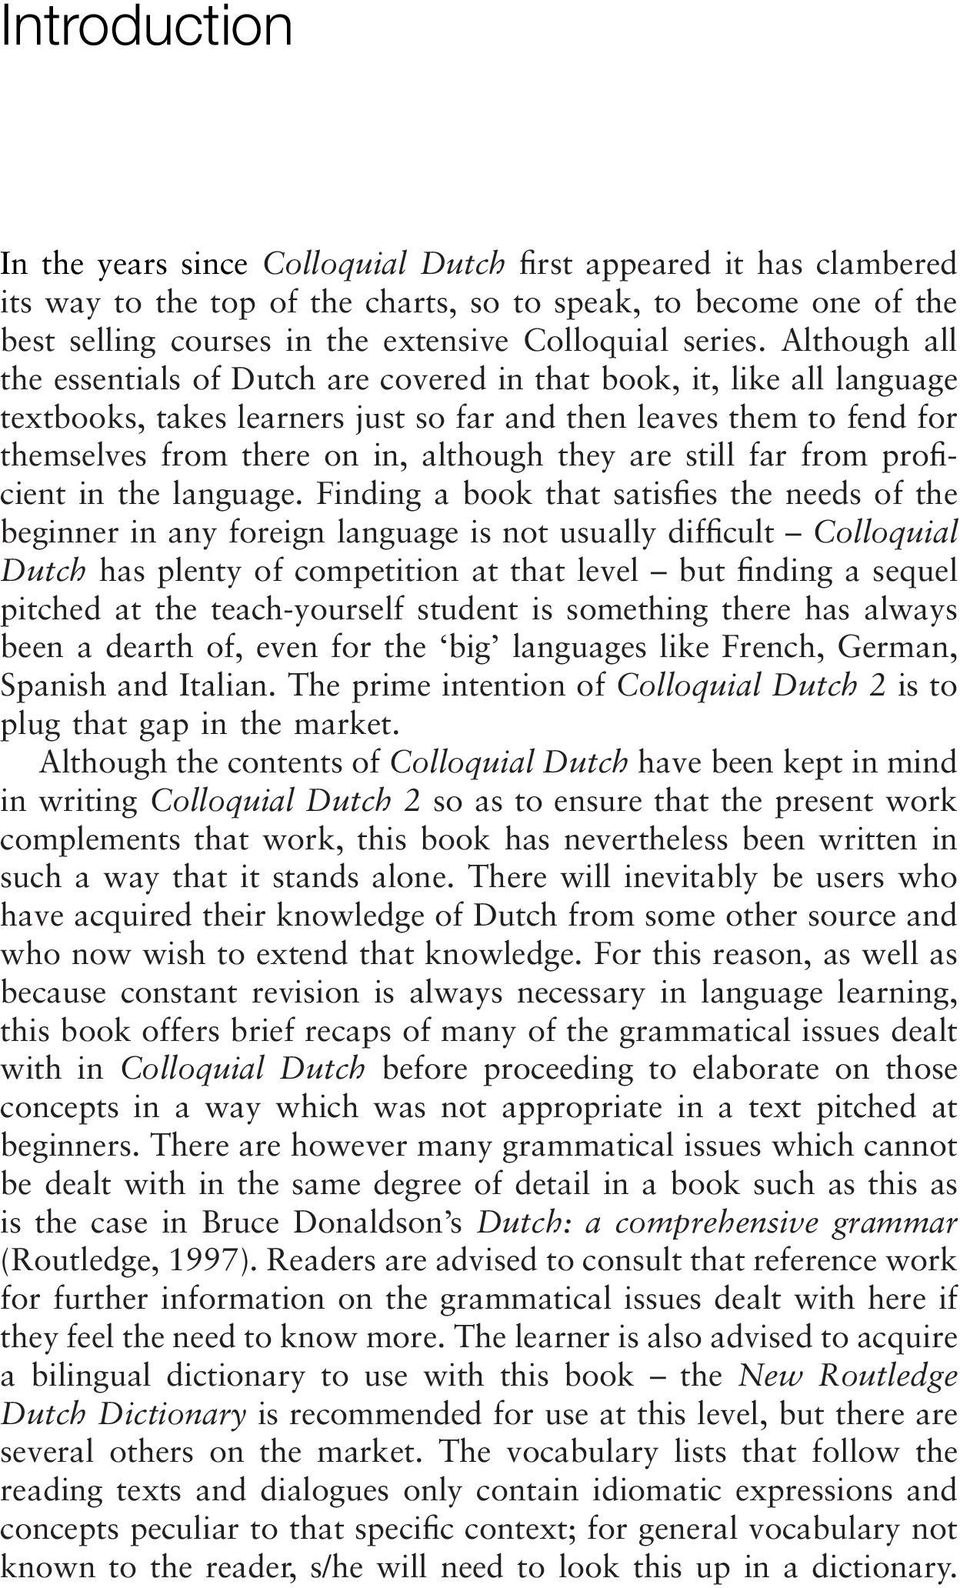 Although all the essentials of Dutch are covered in that book, it, like all language textbooks, takes learners just so far and then leaves them to fend for themselves from there on in, although they